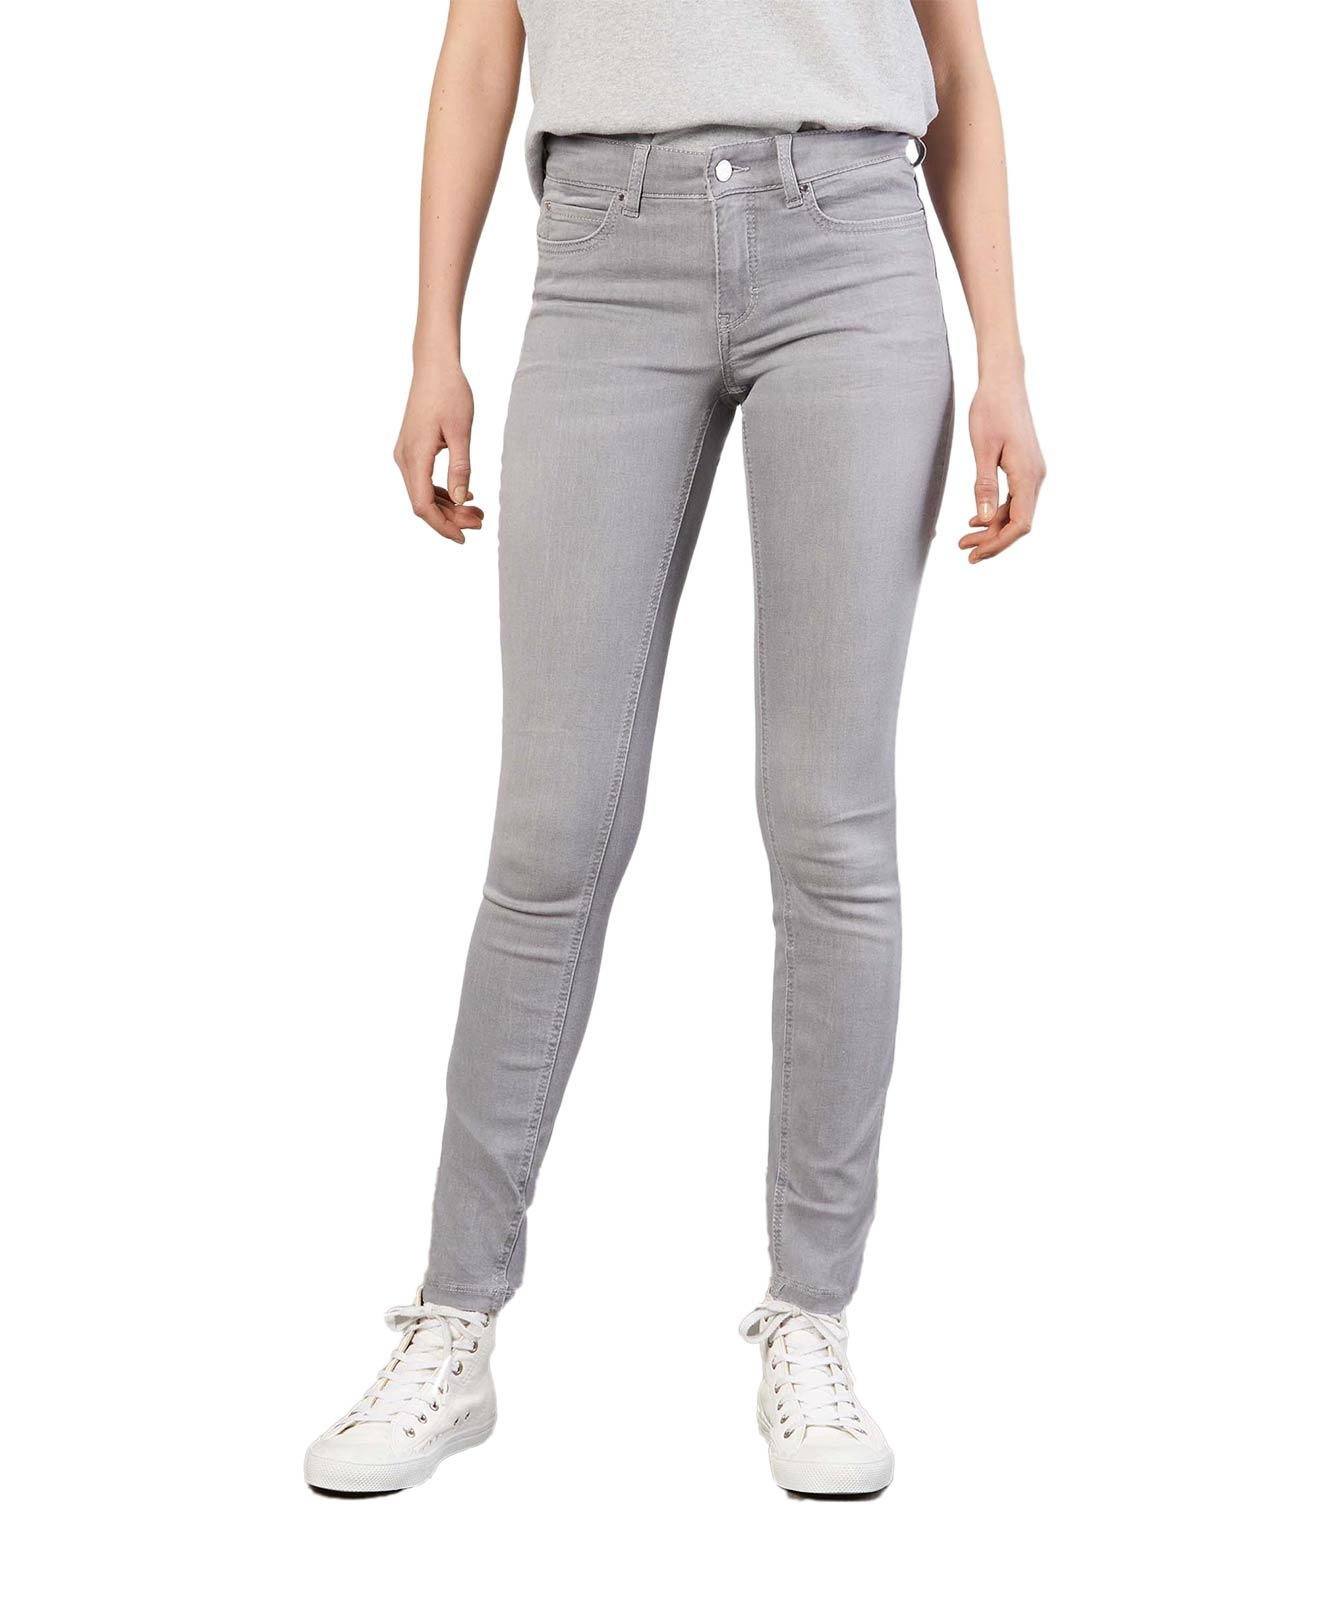 Hosen - MAC Jeans Röhre Dream Skinny in Upcoming Grey Wash  - Onlineshop Jeans Meile